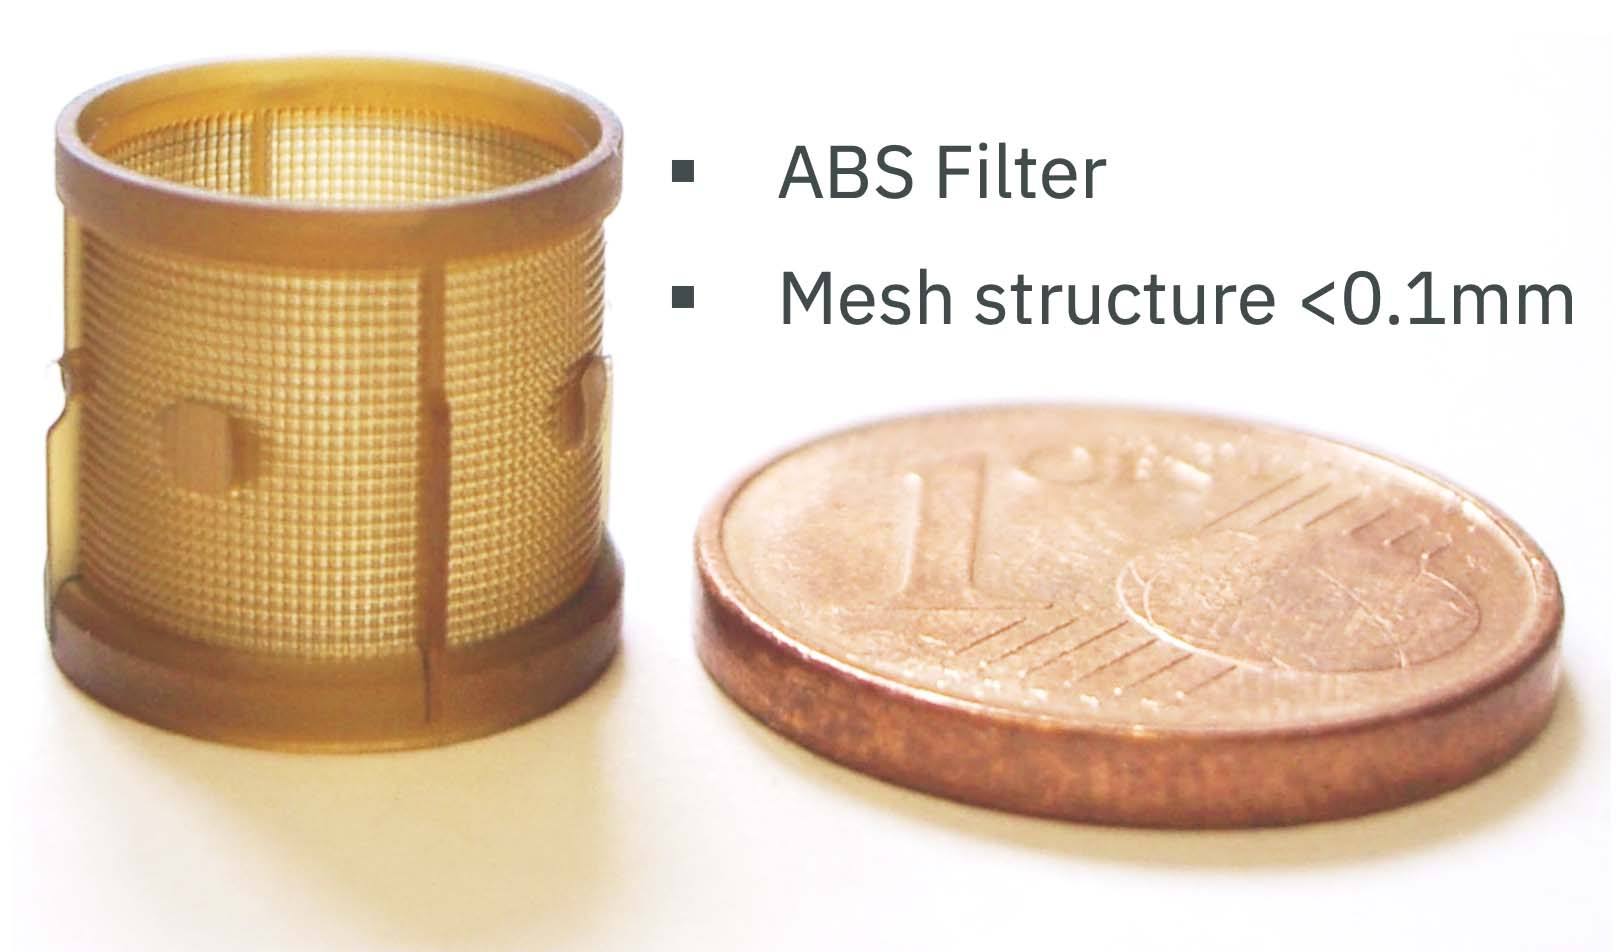 ABS Filter venting